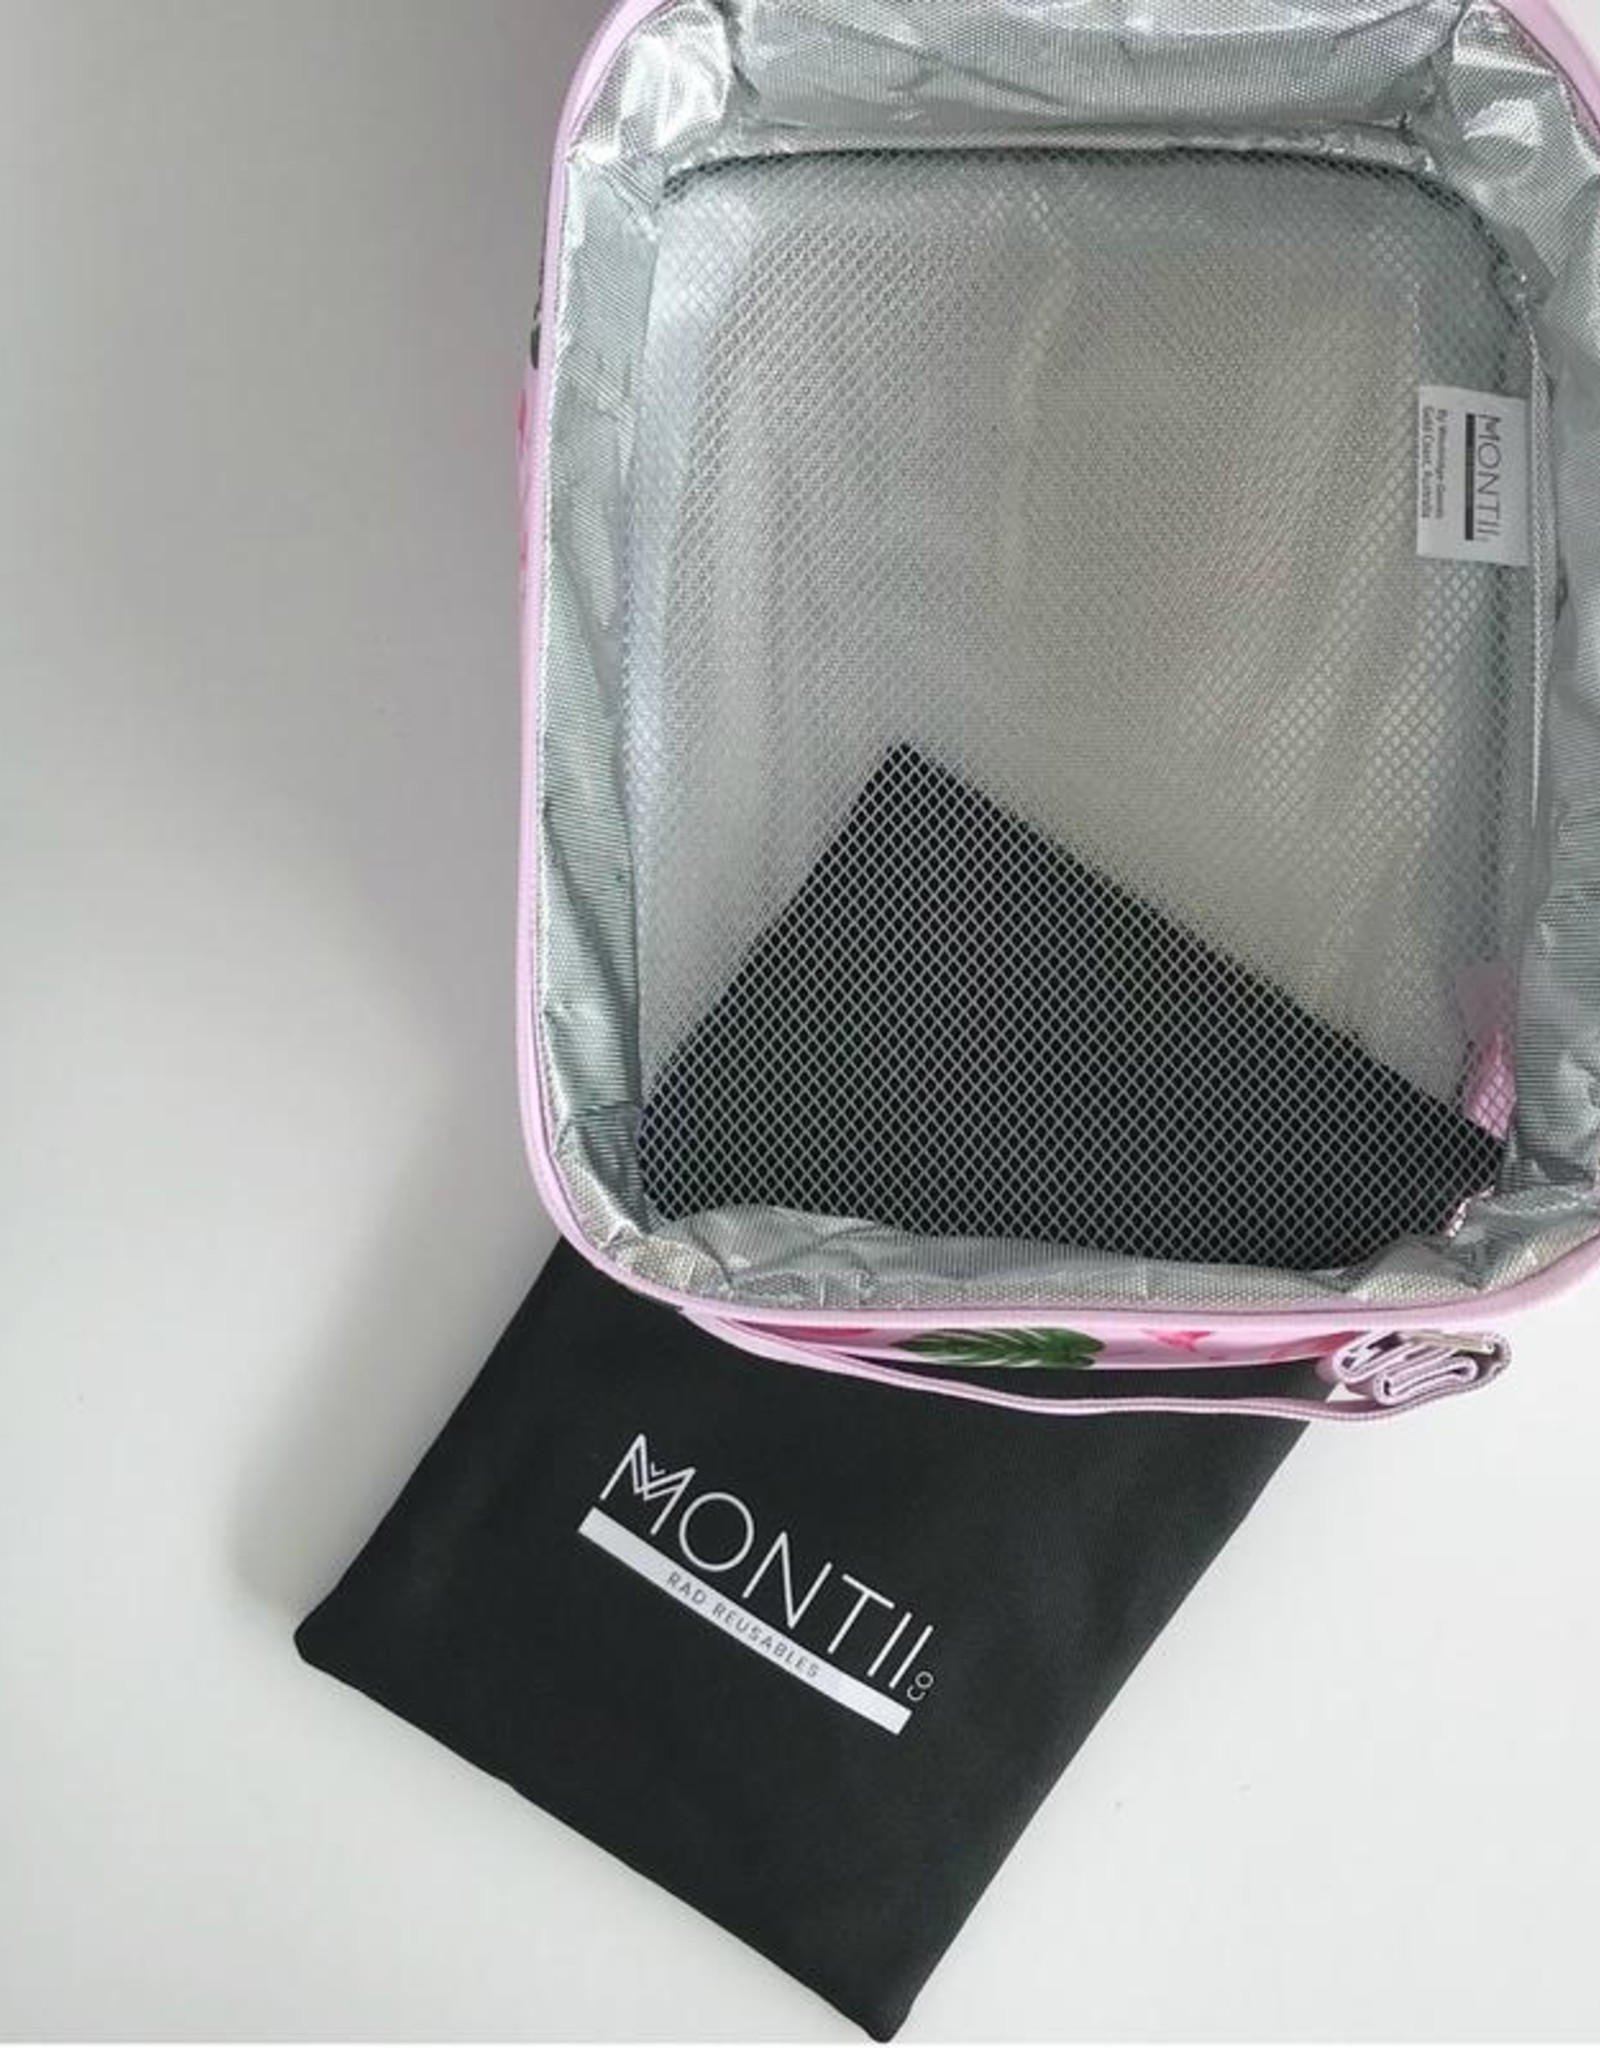 Montii Lunchtas fairy (inclusief ice pack)